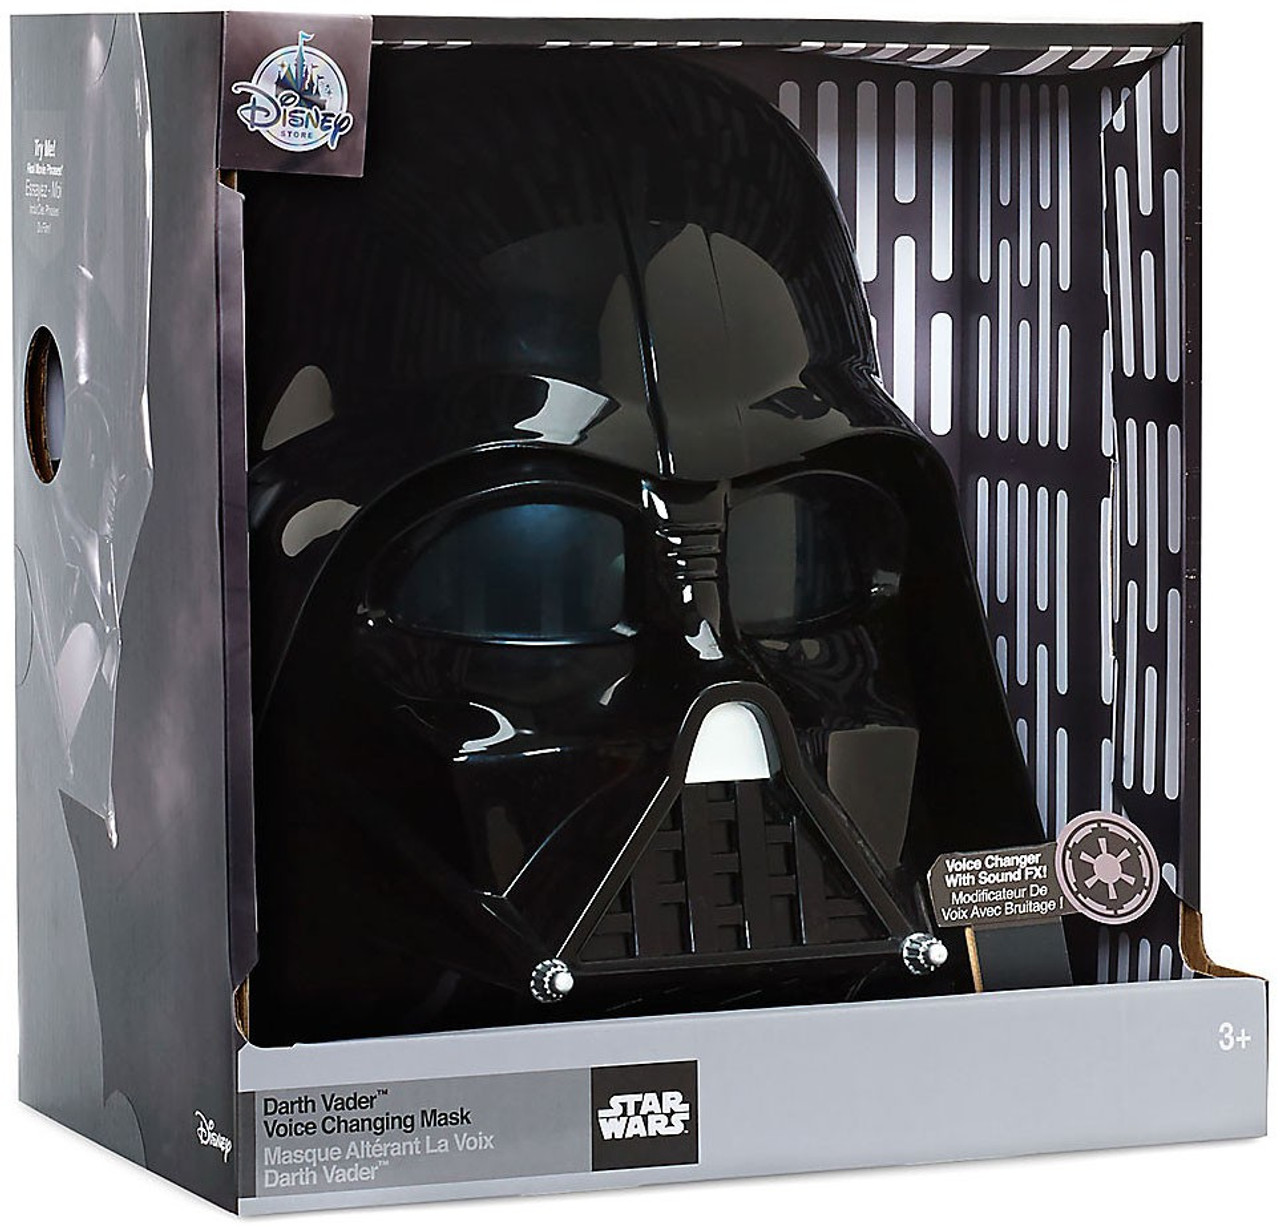 Star Wars The Force Awakens Darth Vader Voice Changer Helmet RETAILS $59.99 NEW!